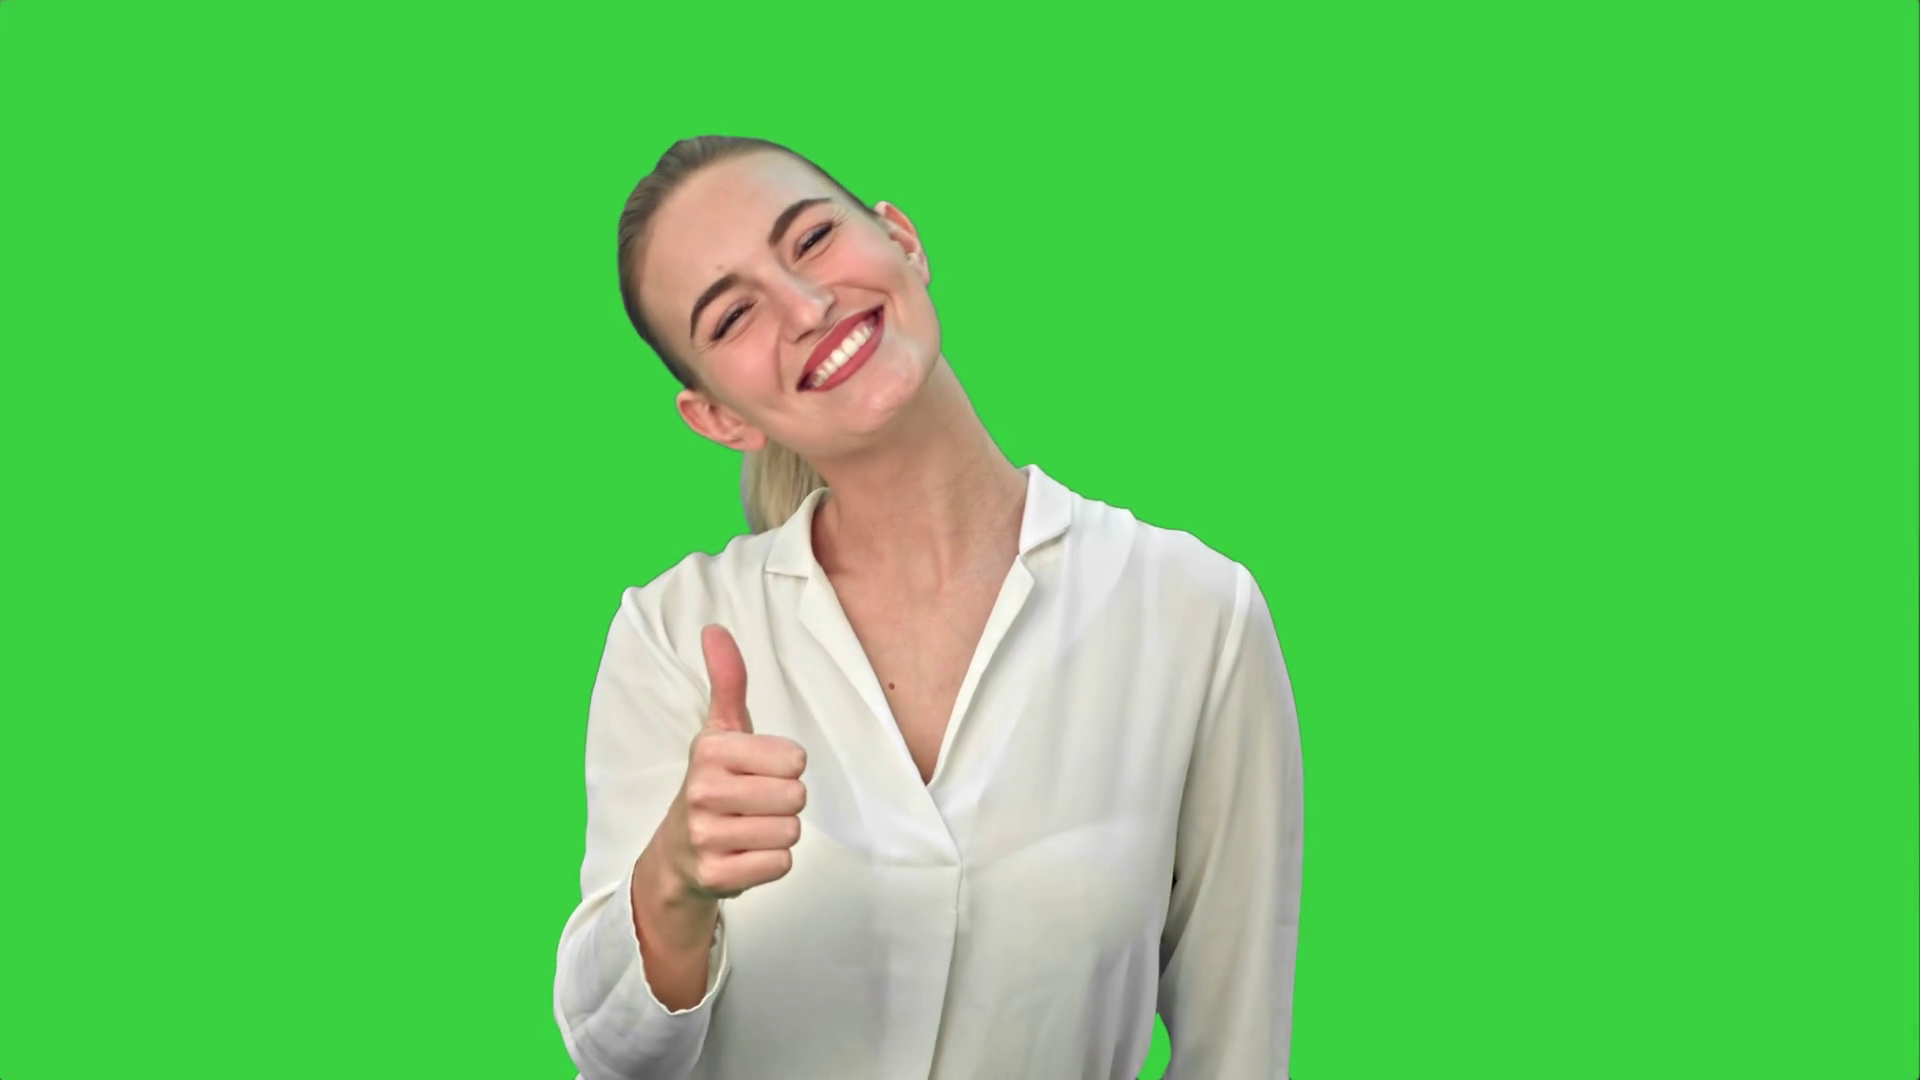 videoblocks-happy-excited-woman-showing-approval-hand-gesture-thumb-up-and-smiling-on-a-green-screen-chroma-key_suhyool2e_thumbnail-1080_01